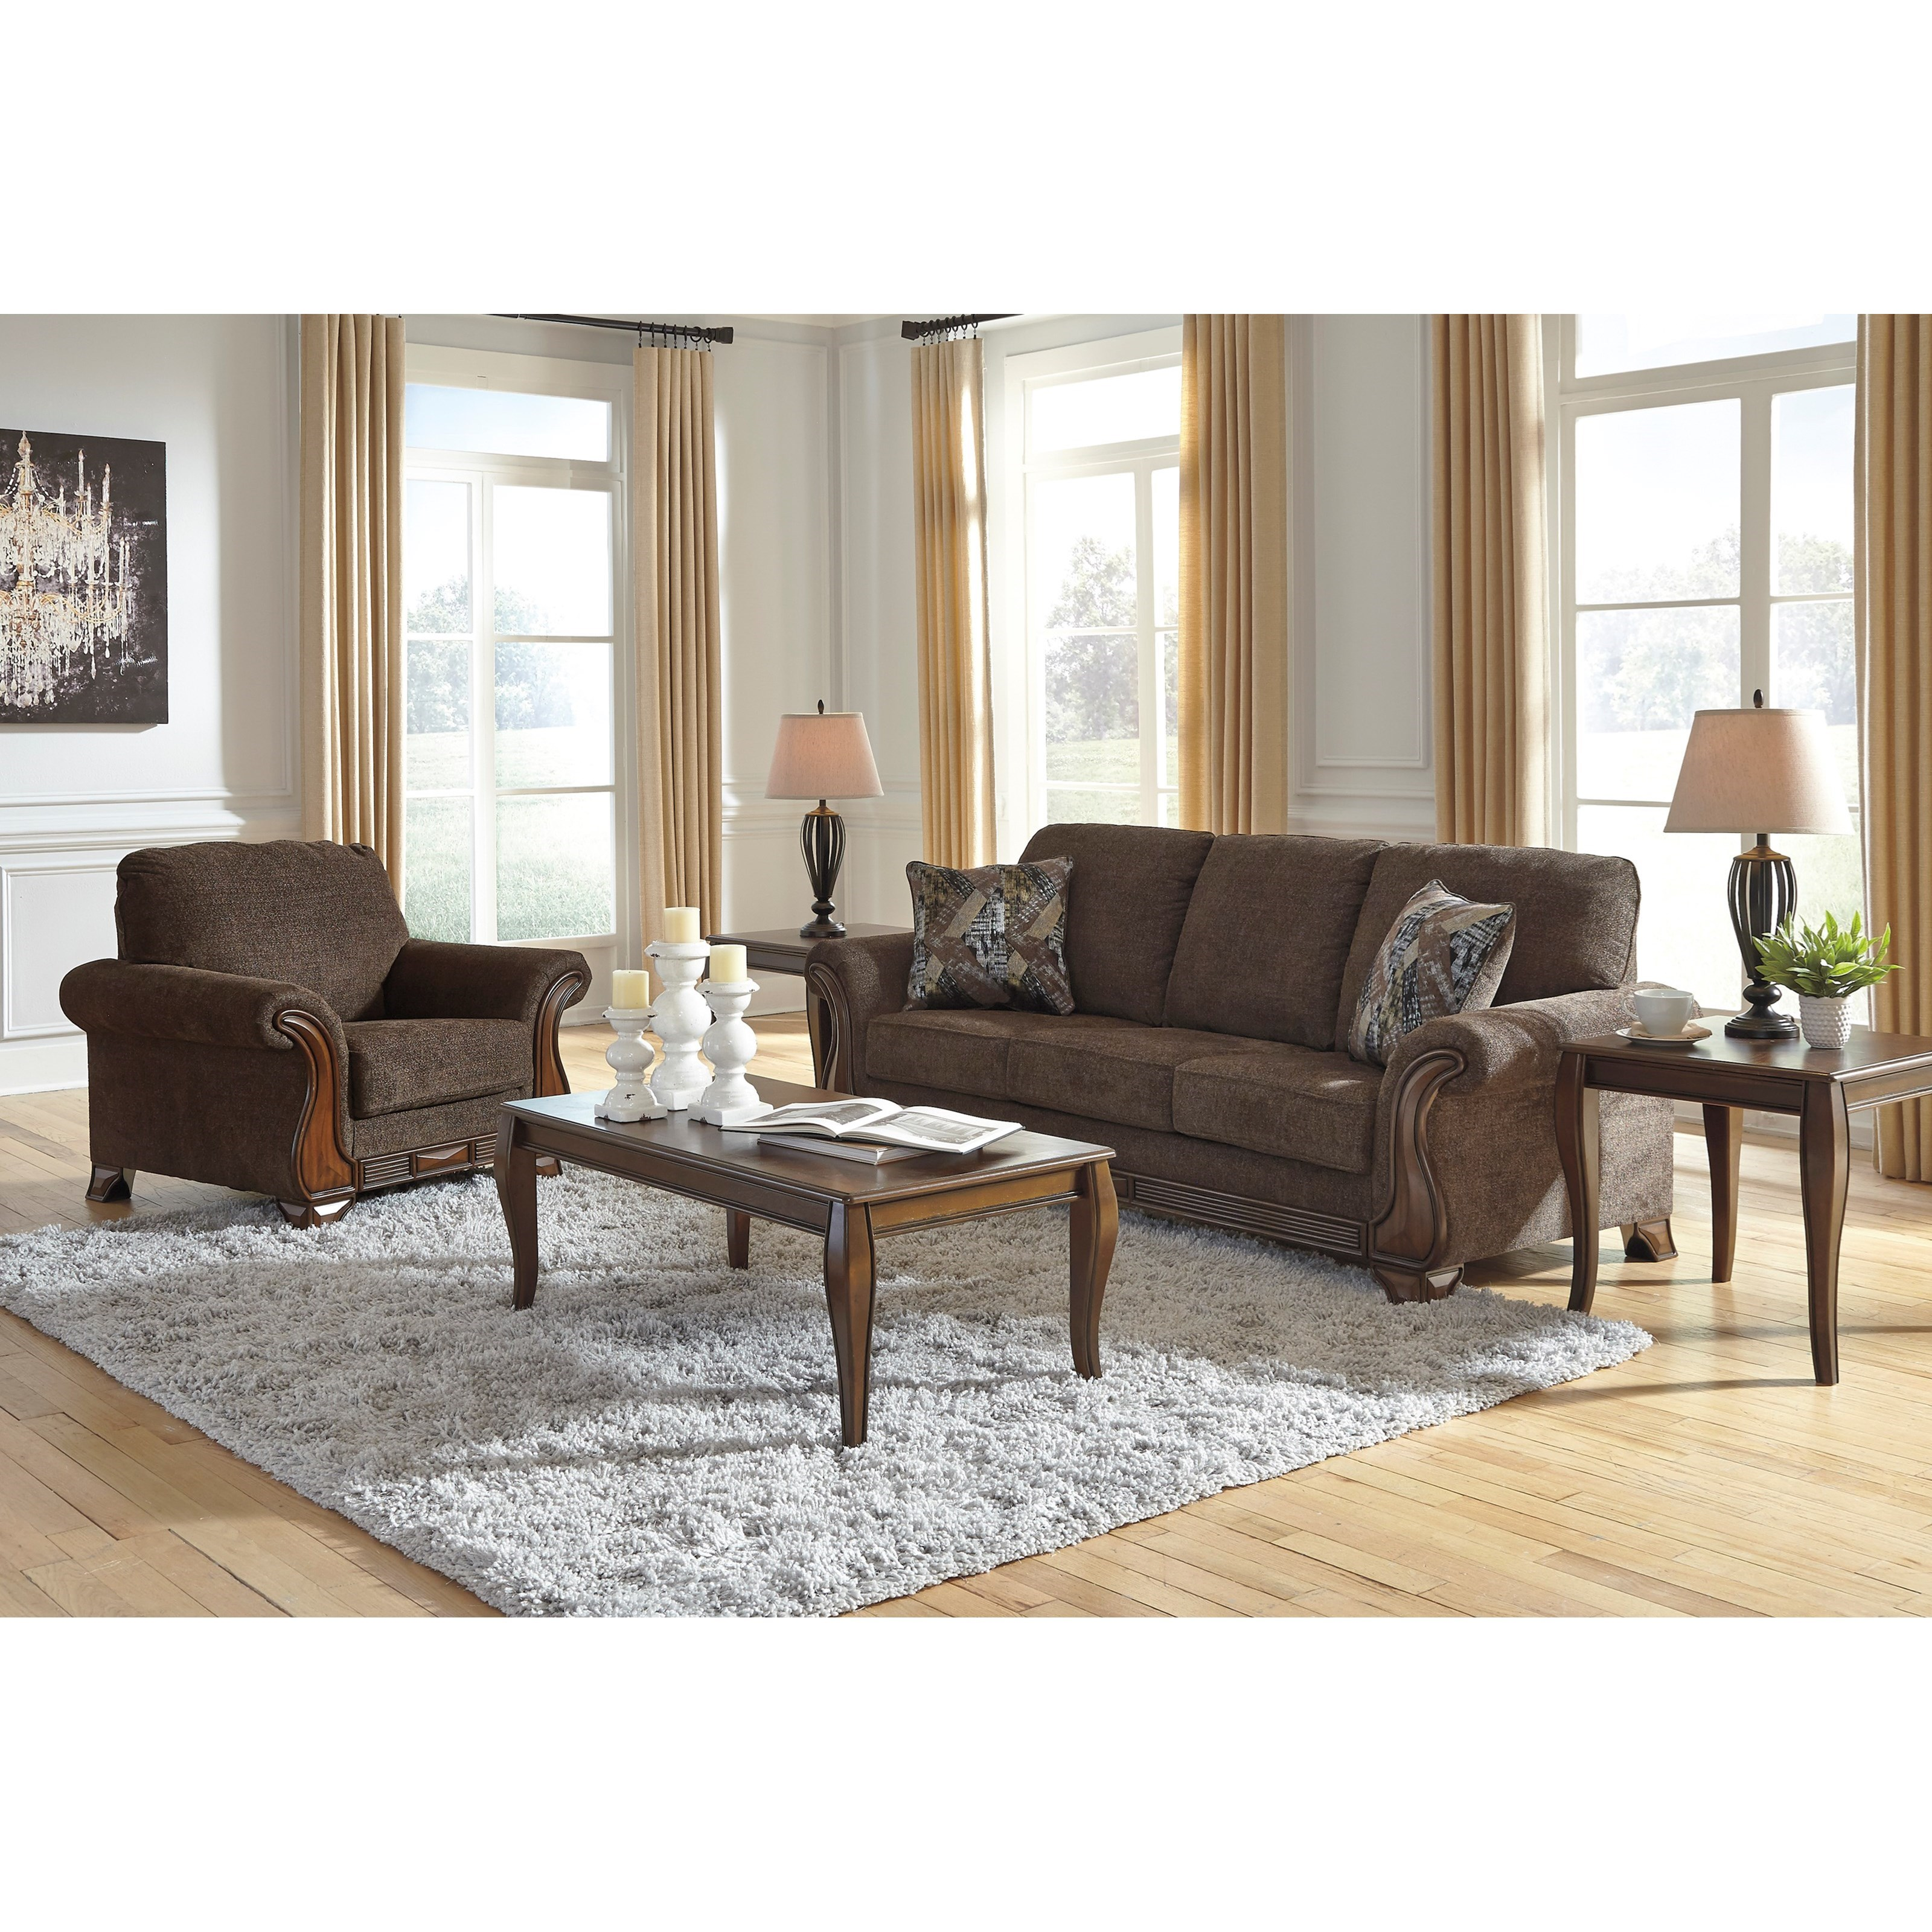 Miltonwood Living Room Group by Benchcraft at Northeast Factory Direct